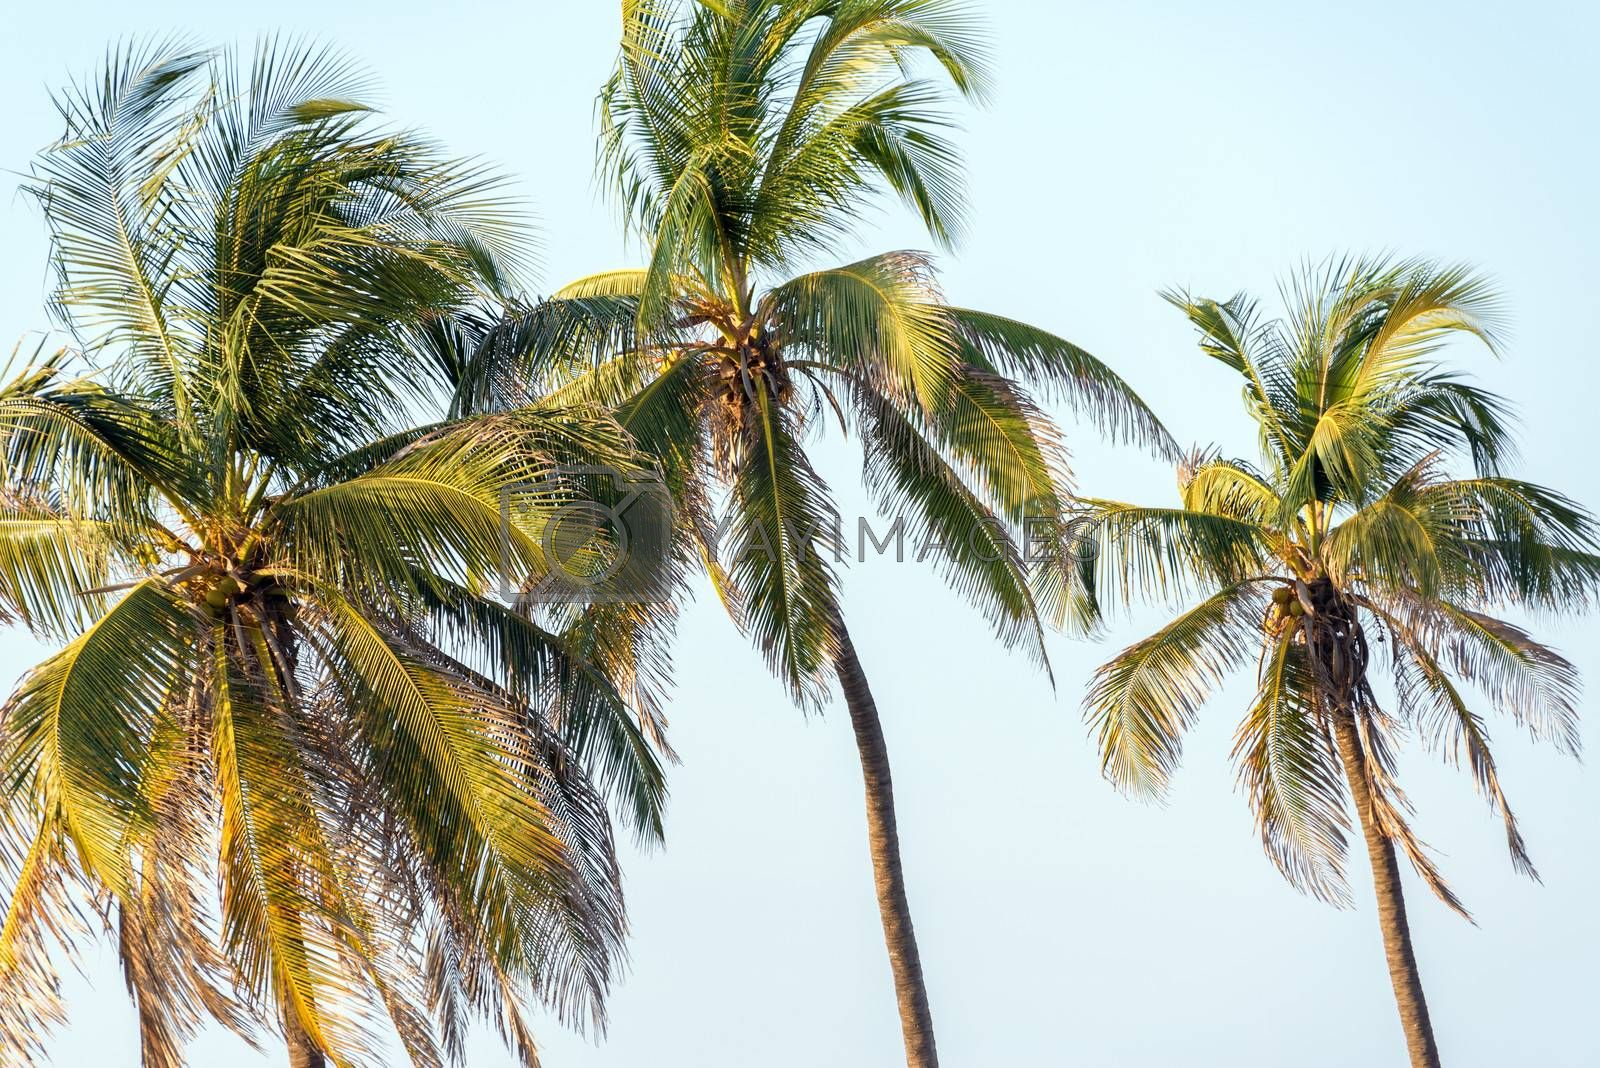 Three palm trees in Cartagena, Colombia